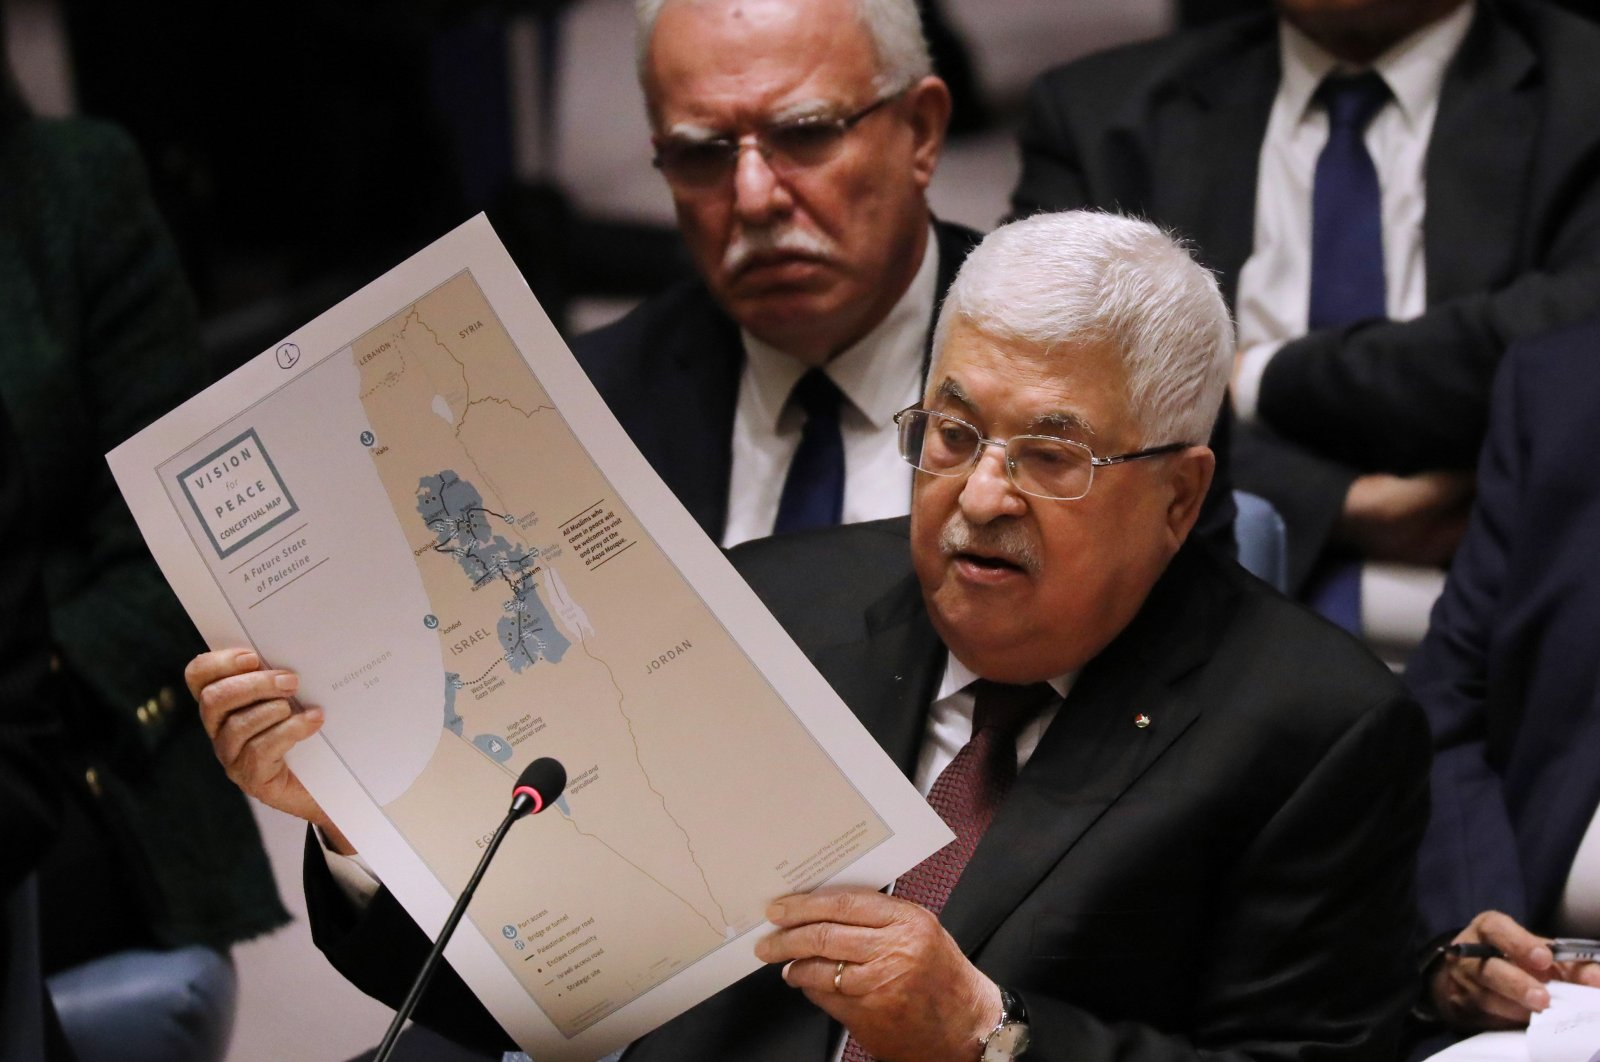 Palestinian President Mahmoud Abbas holds up a Vision for Peace map while speaking at the United Nations Security Council in New York City, U.S., on Feb. 11, 2020. (Spencer Platt/Getty Images/AFP)